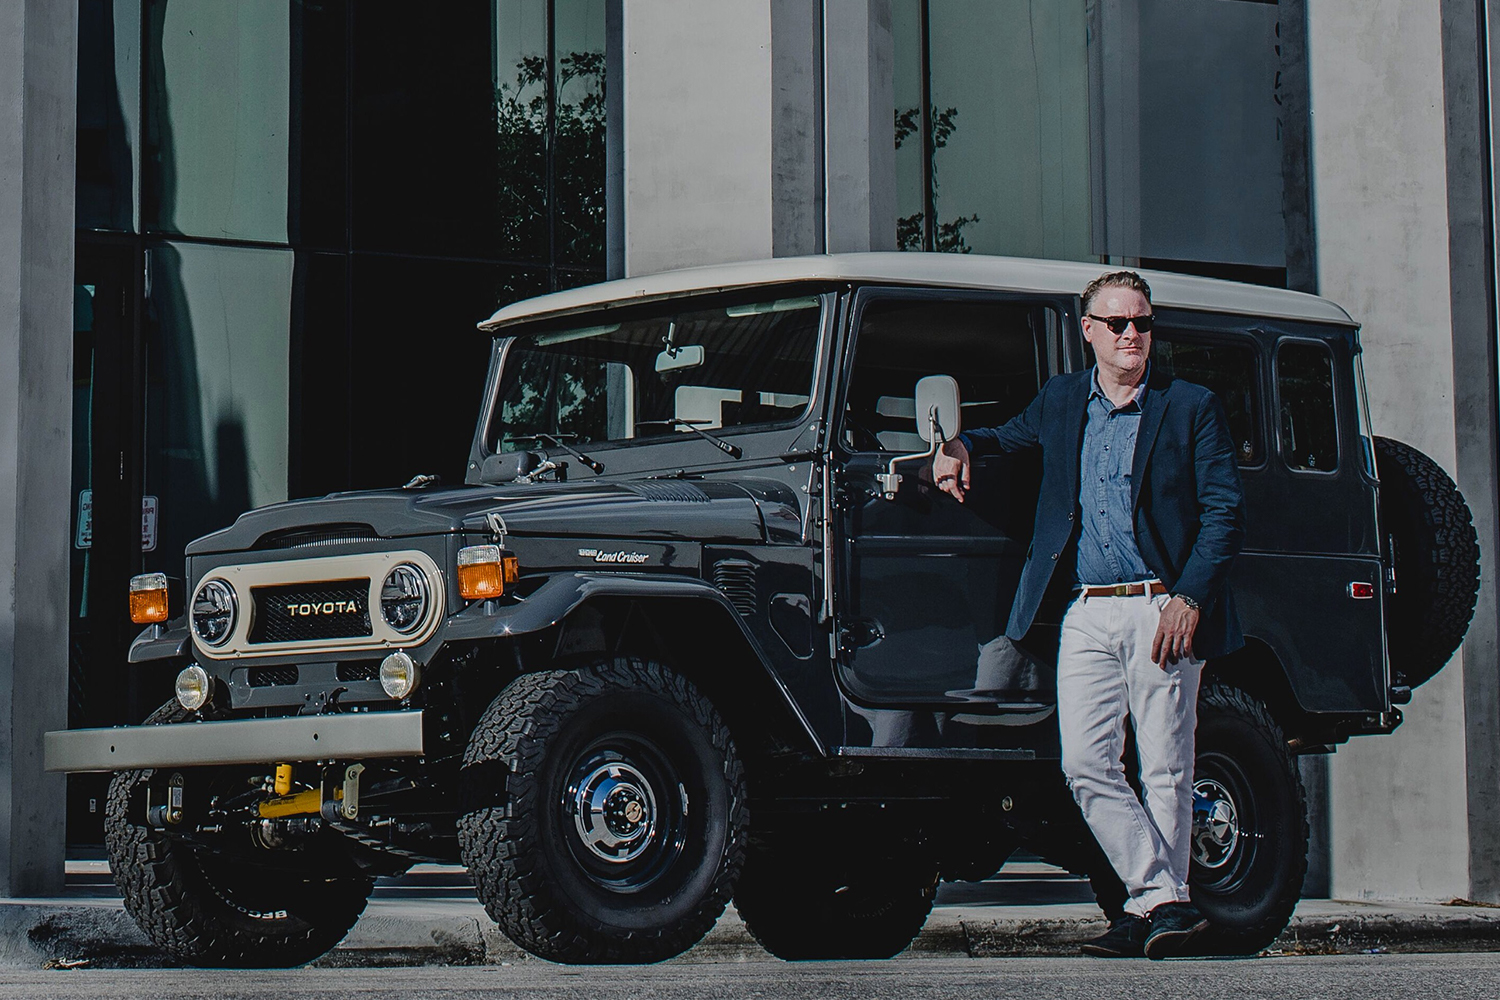 Menswear designer Todd Snyder in white pants and a blue jacket standing next to a custom Toyota Land Cruise designed in partnership with The FJ Company